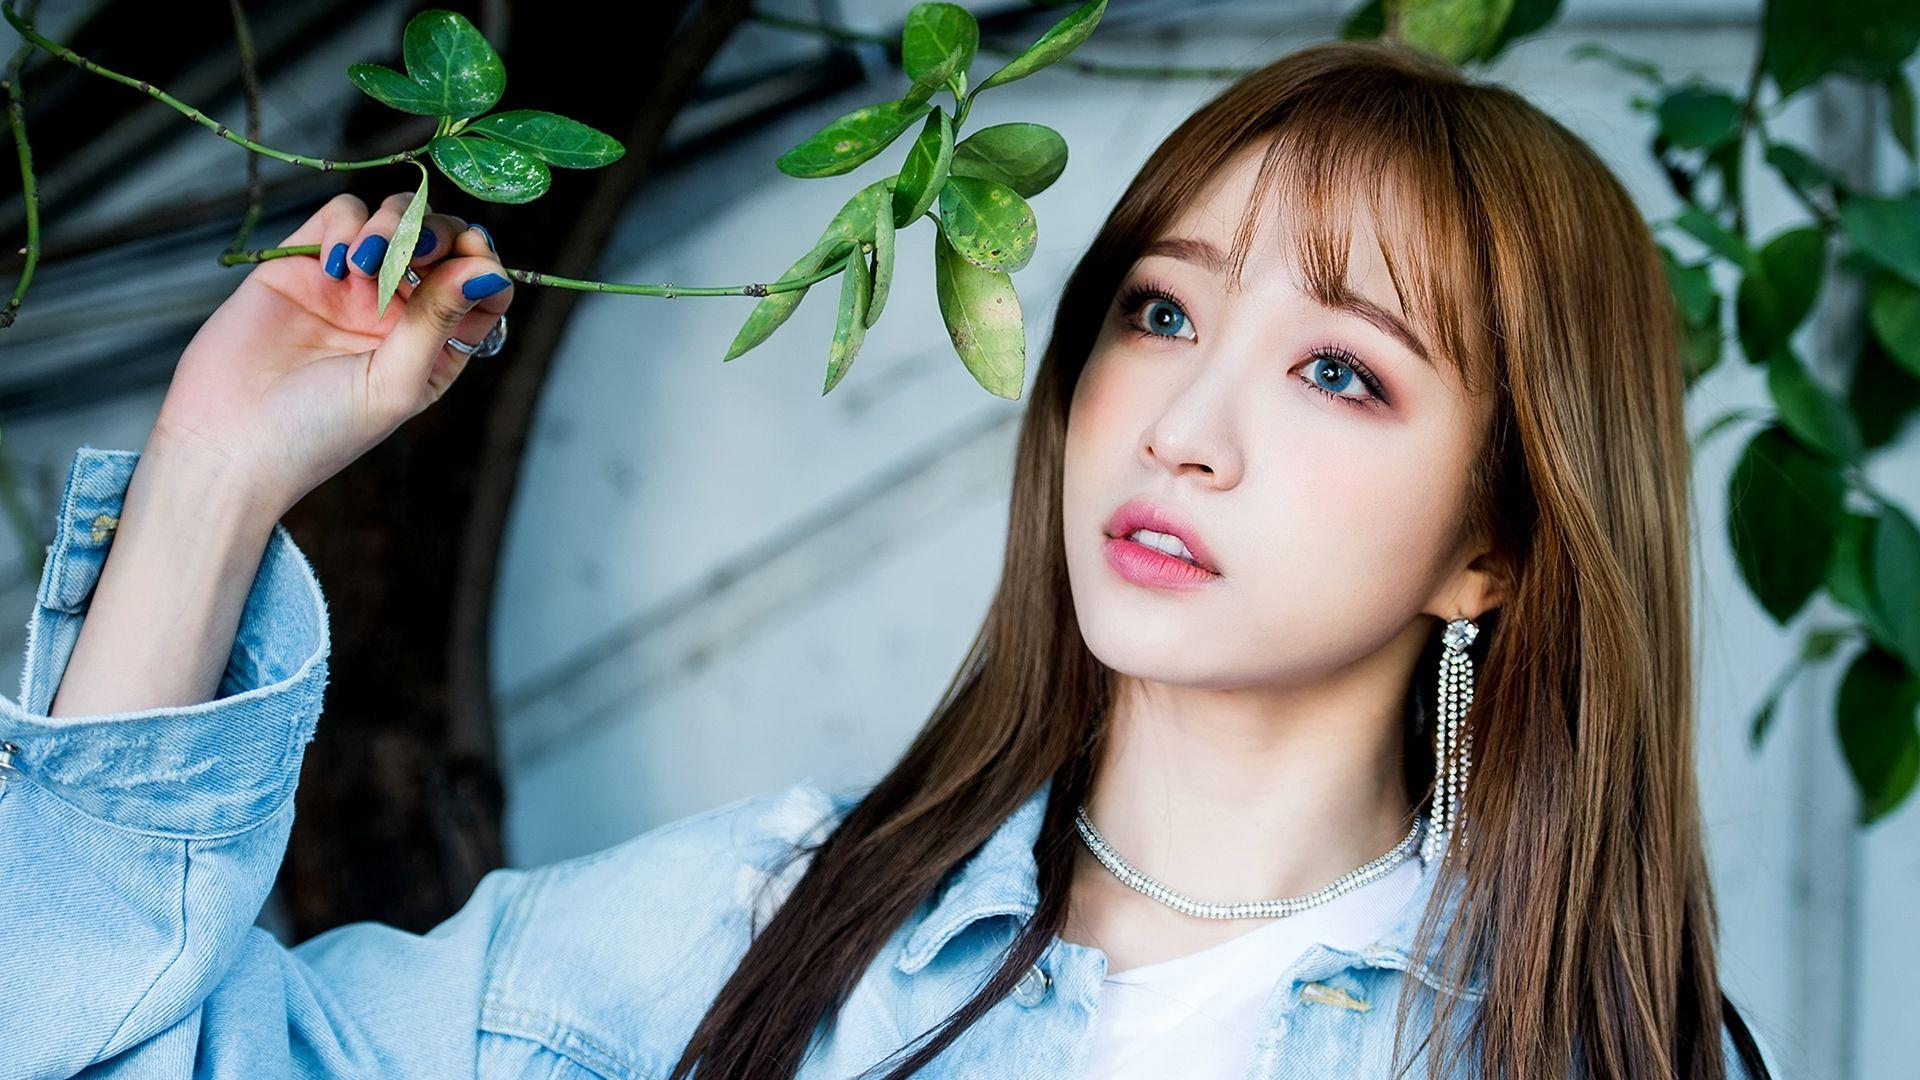 Hani Exid Wallpapers Top Free Hani Exid Backgrounds Wallpaperaccess